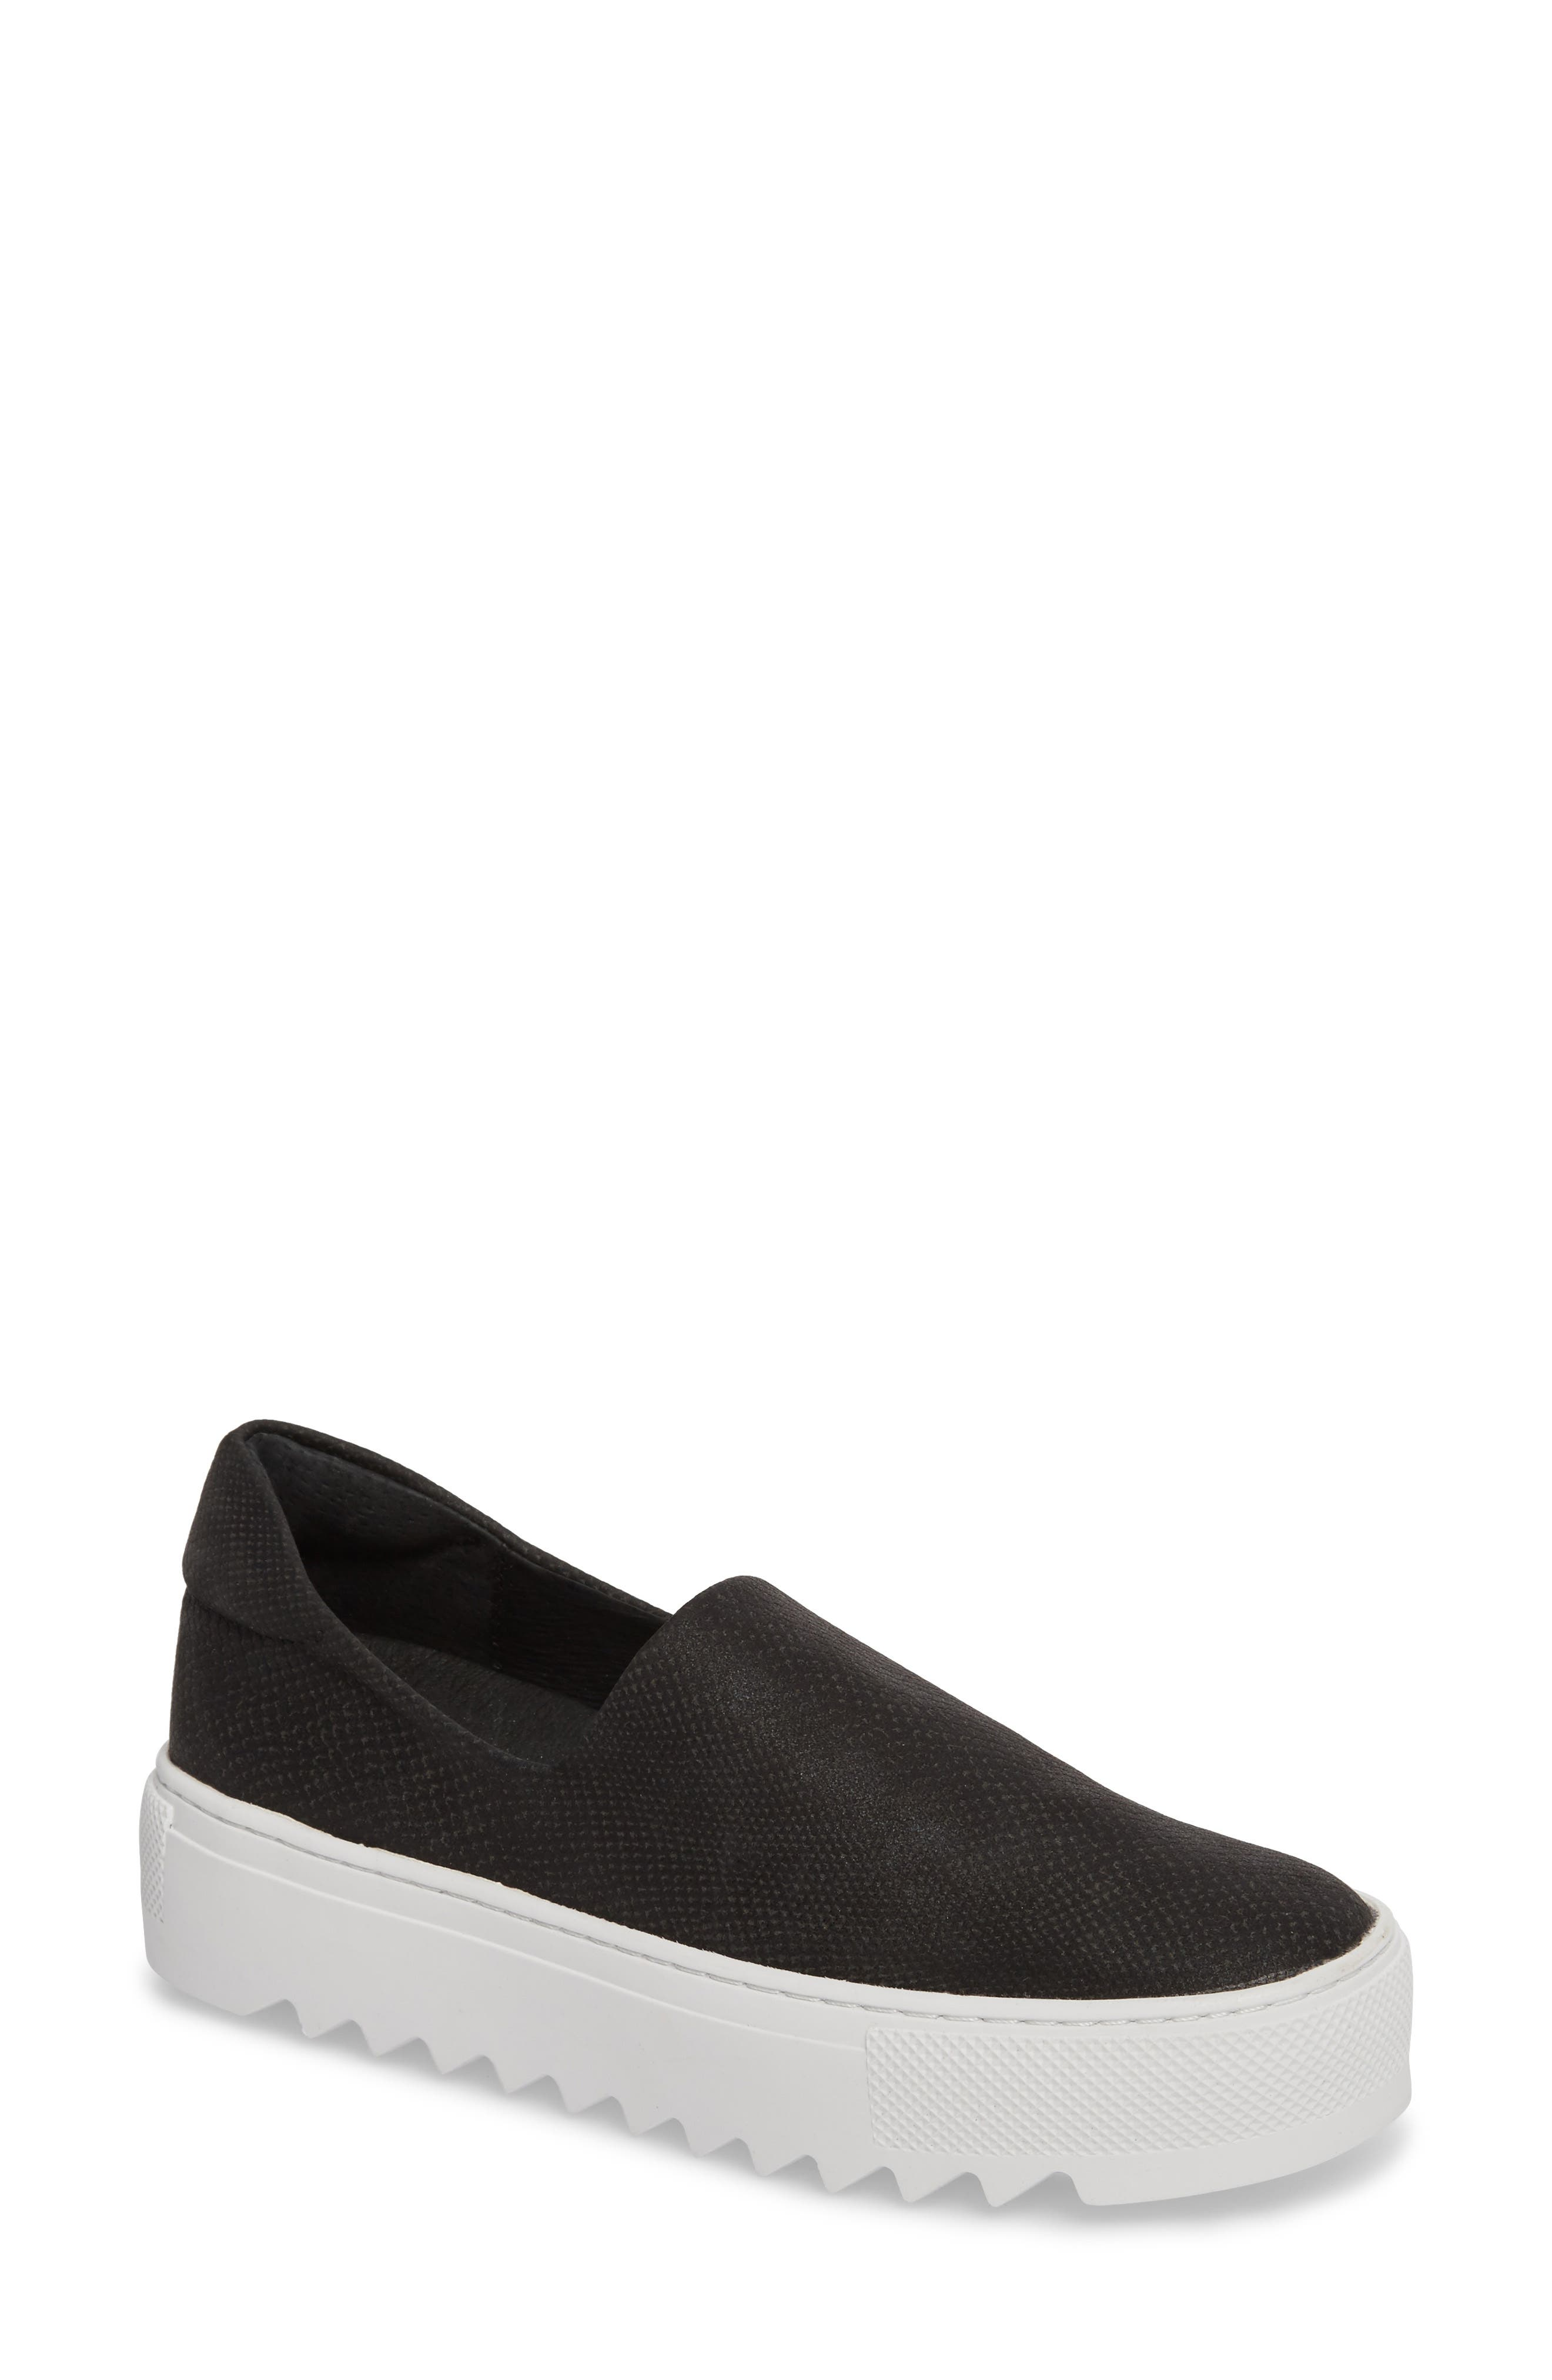 Sage Platform Slip-On Sneaker,                             Main thumbnail 1, color,                             BLACK MIX FABRIC